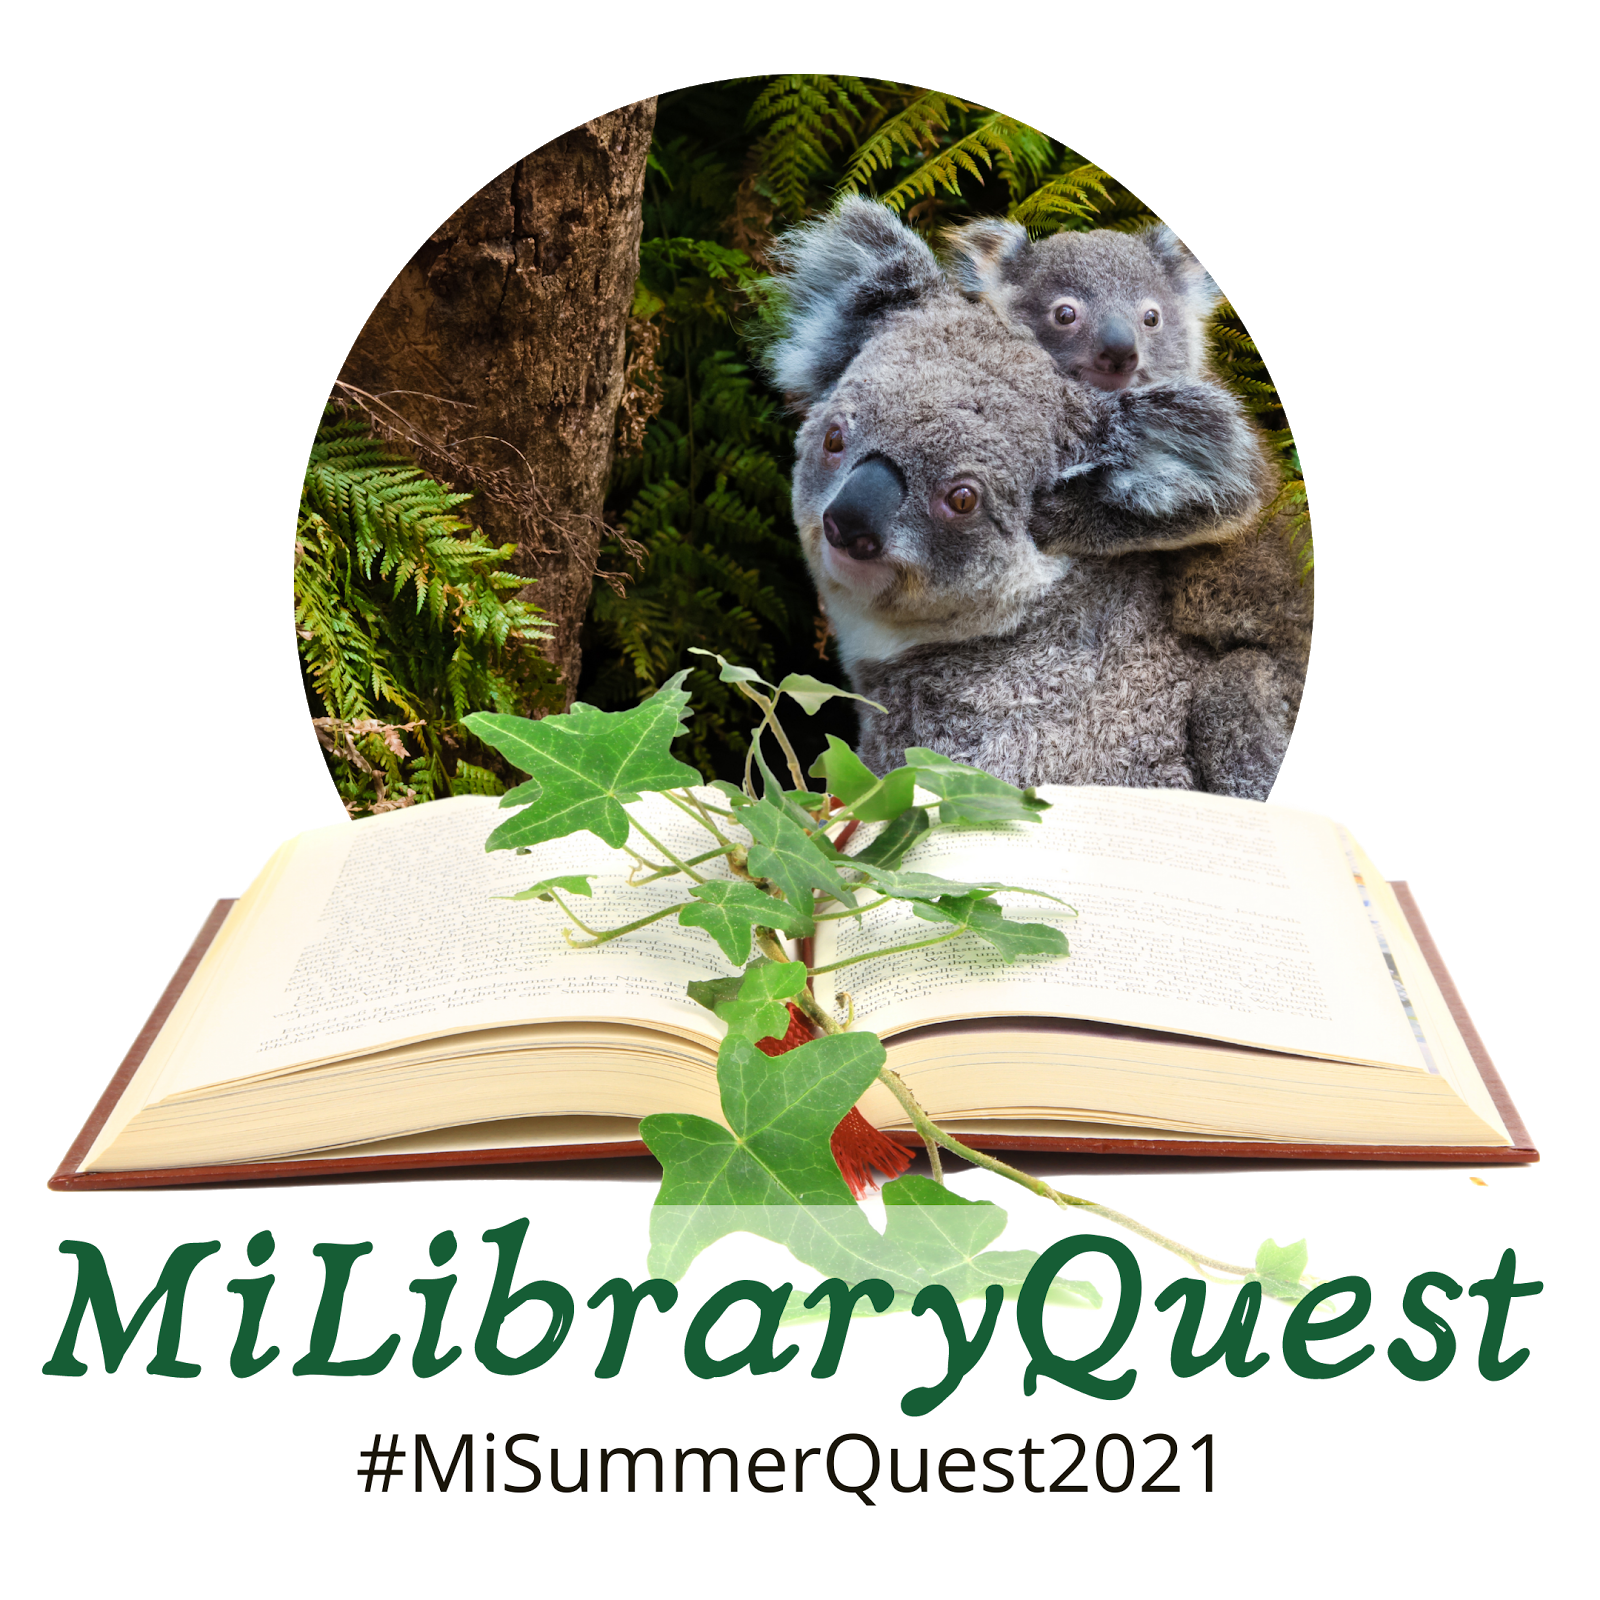 MiLibaryQuest logo with koalas, open book, and the text #MiLibraryQuest2021